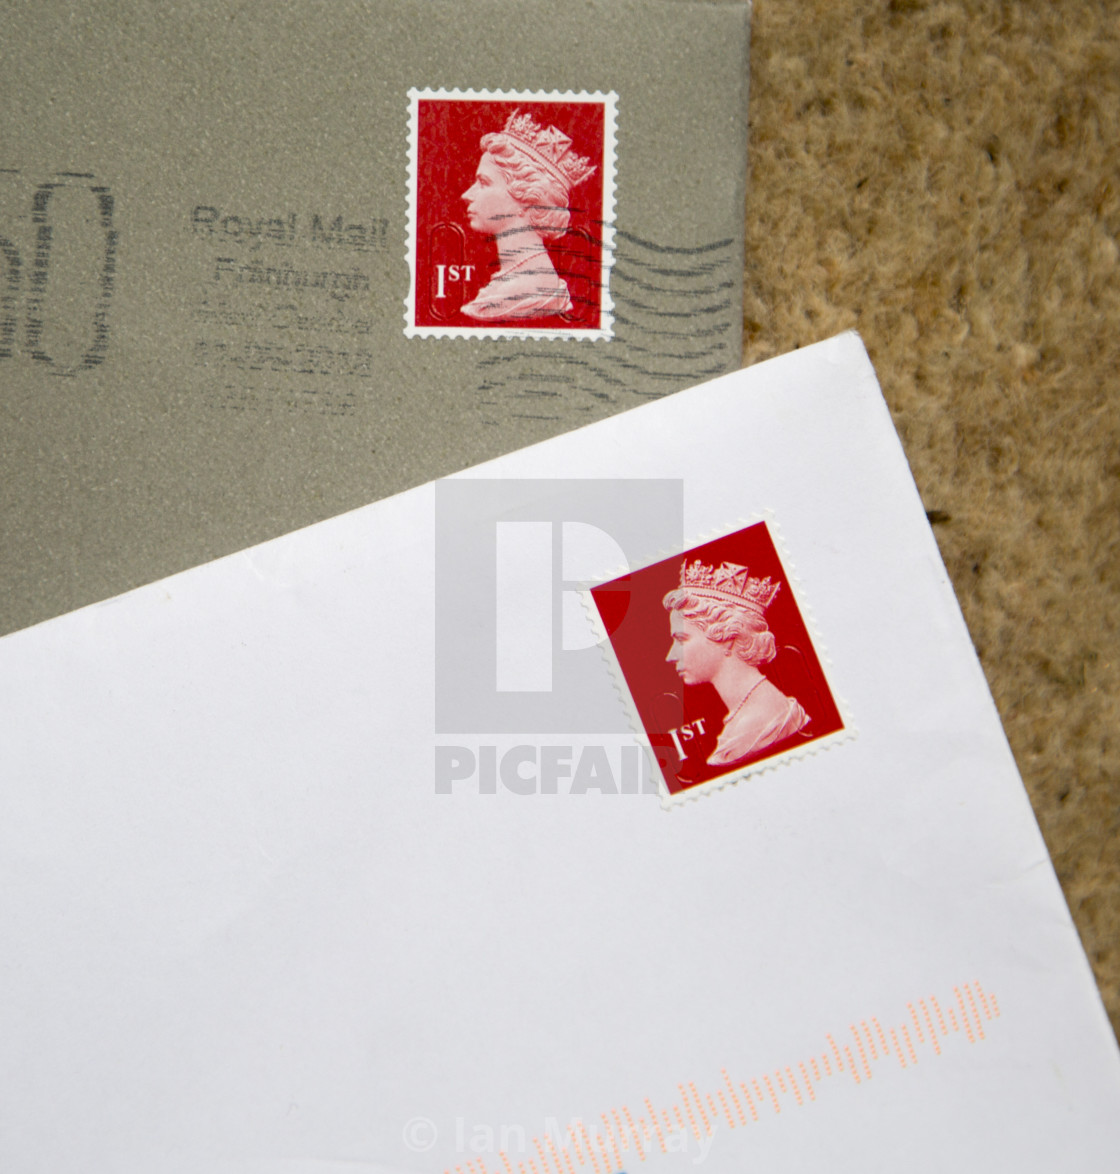 """Looking down at letters in envelopes with red First class postage stamps,."